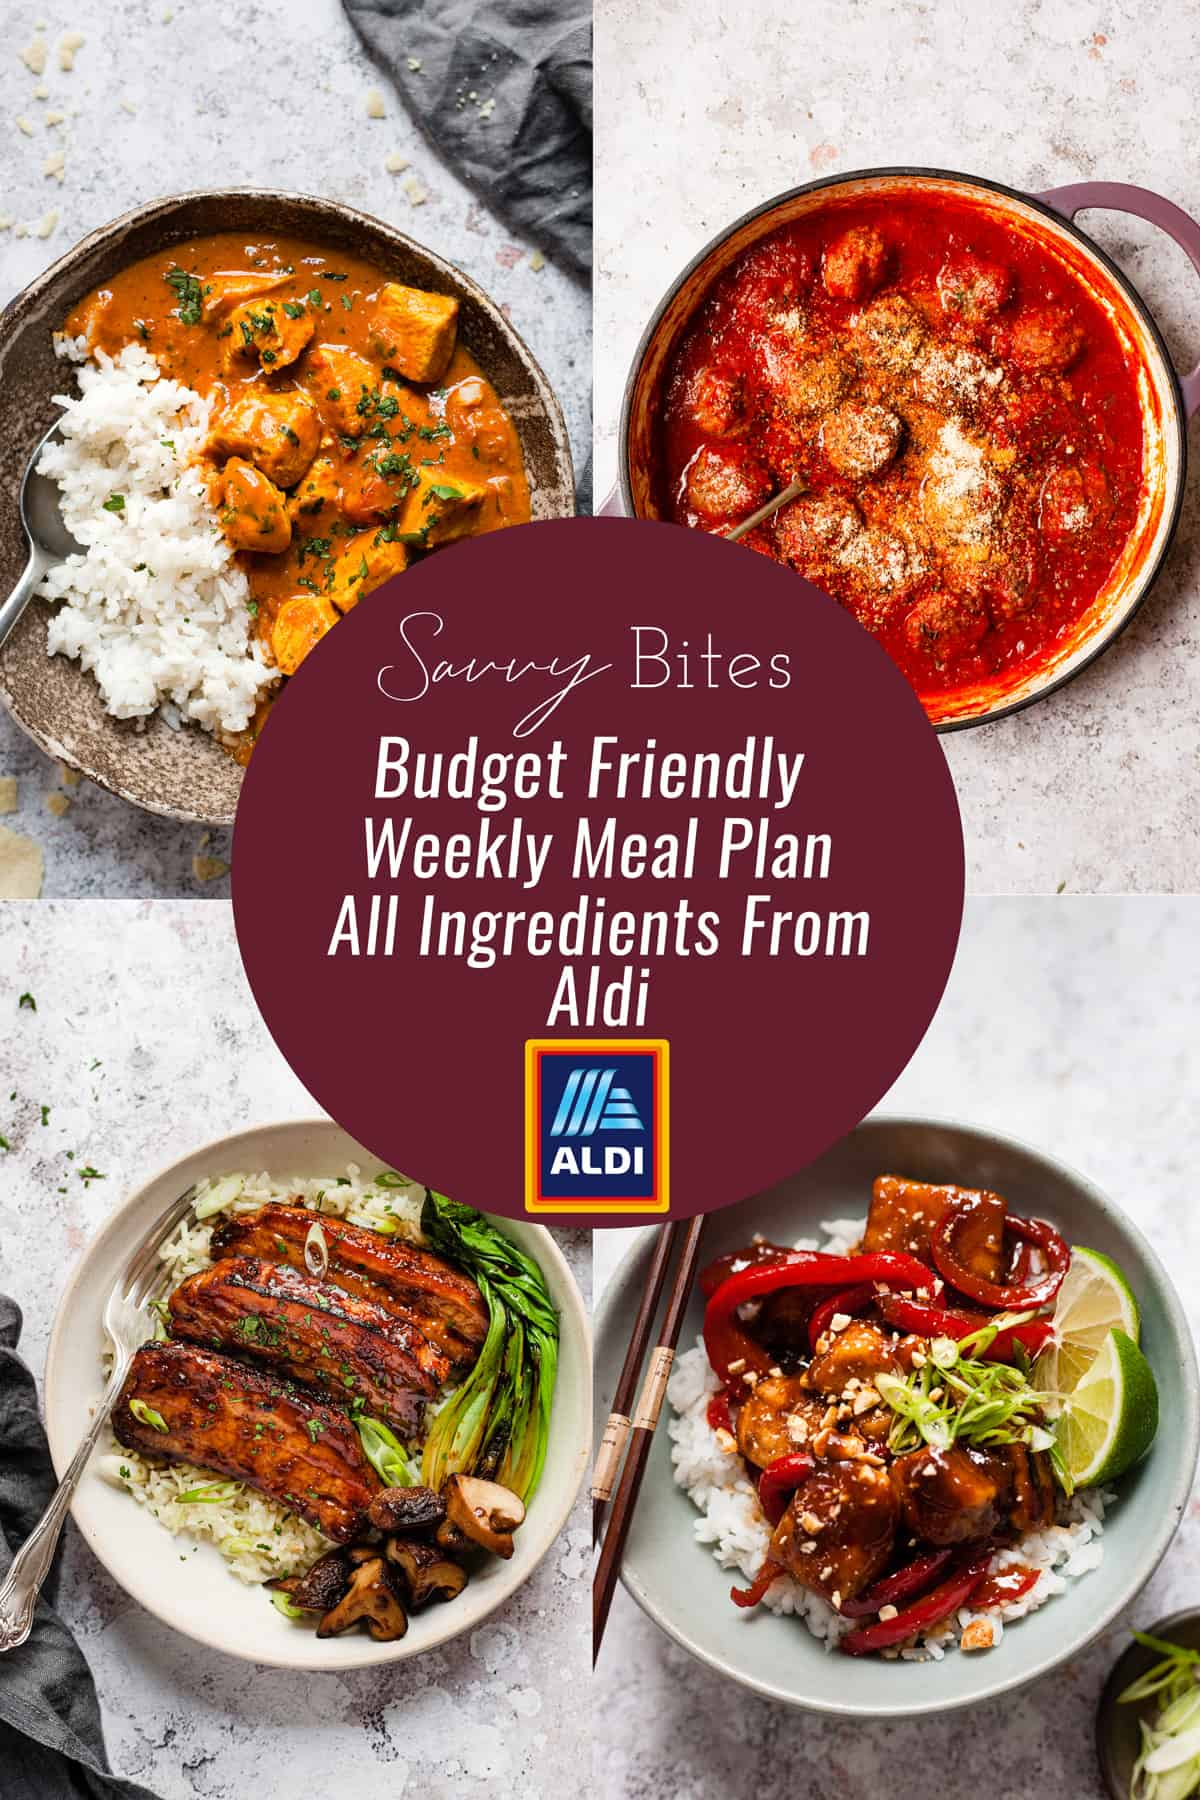 Aldi budget meal plan photo collage.